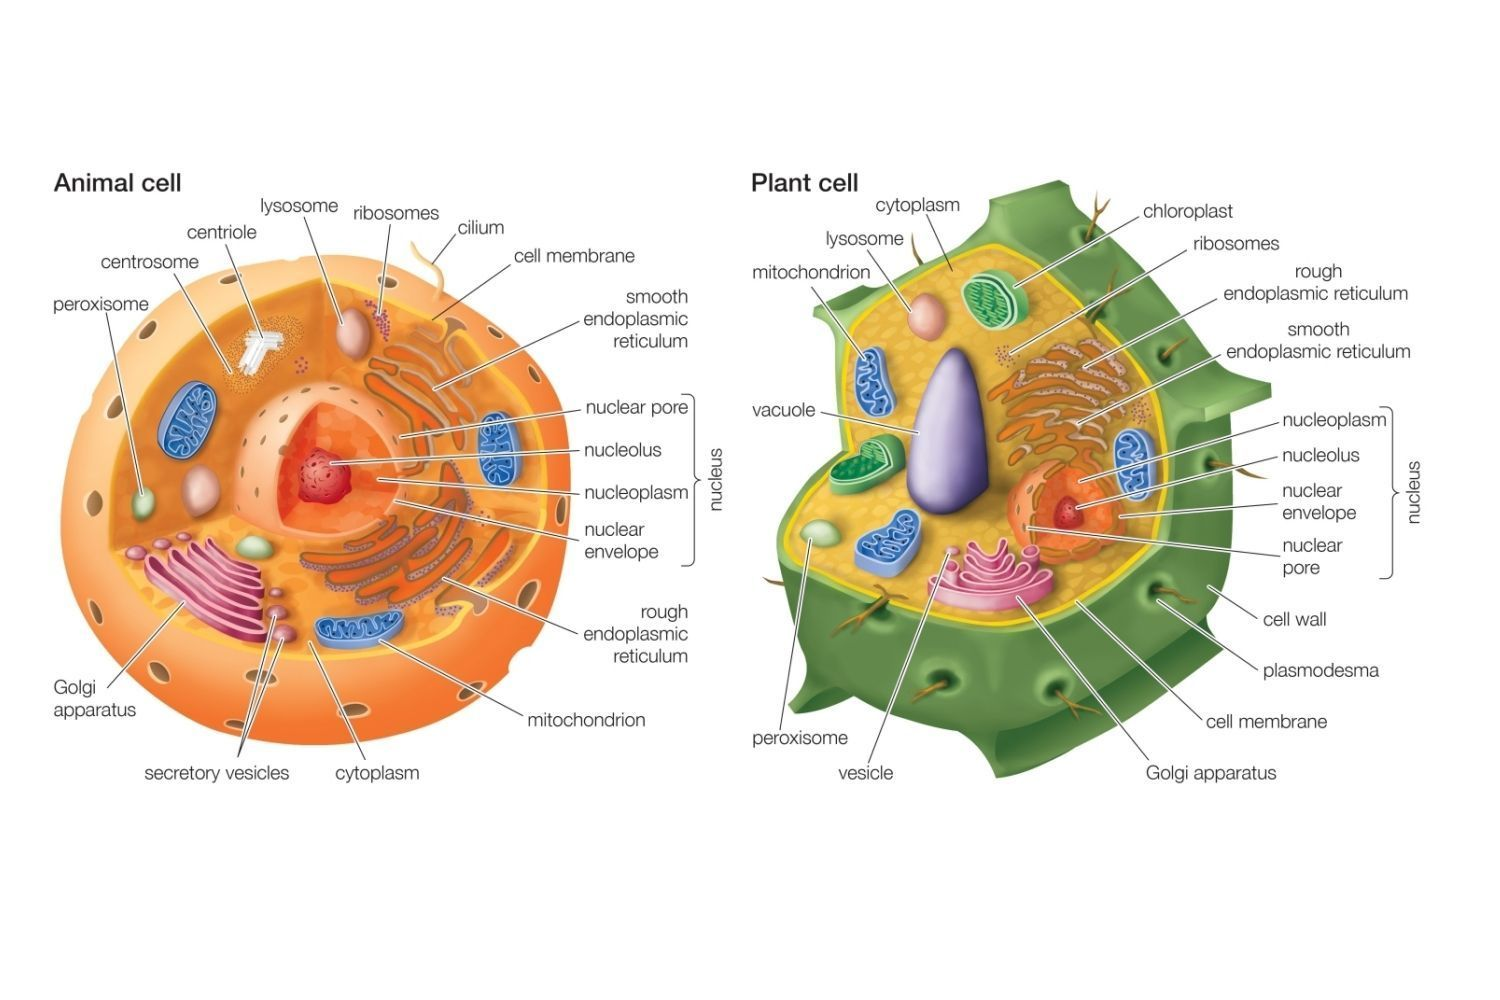 Plant And Animal Cells Are Similar In That Both Are Eukaryotic Cells However There Are Several Importan Animal Cell Plant And Animal Cells Plant Cell Diagram